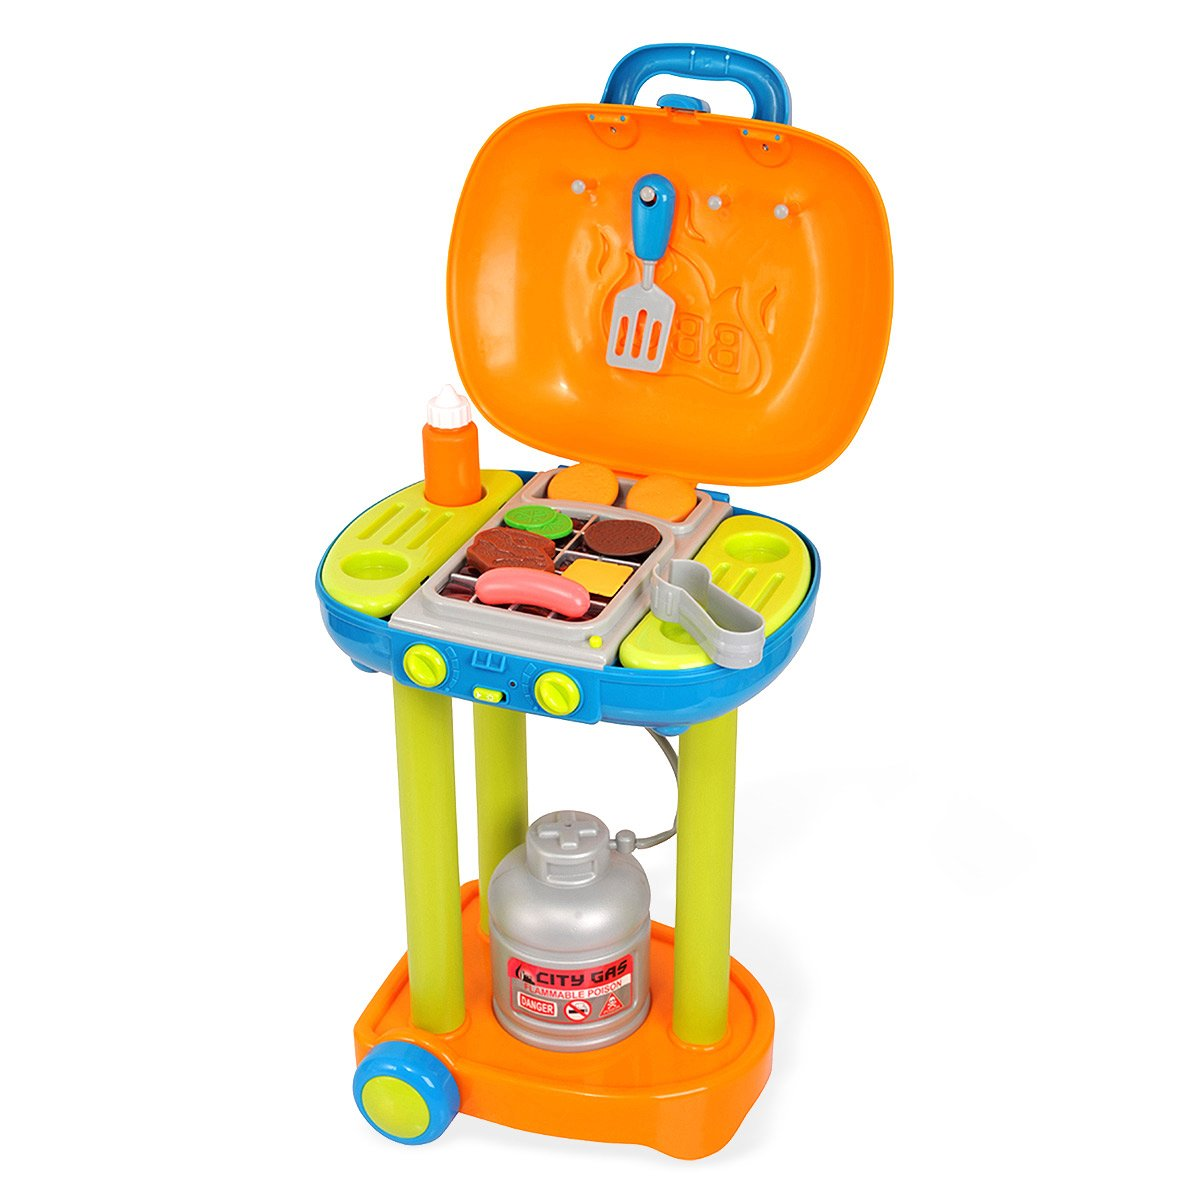 Spielzeug Grill Playgo Grill-Trolley